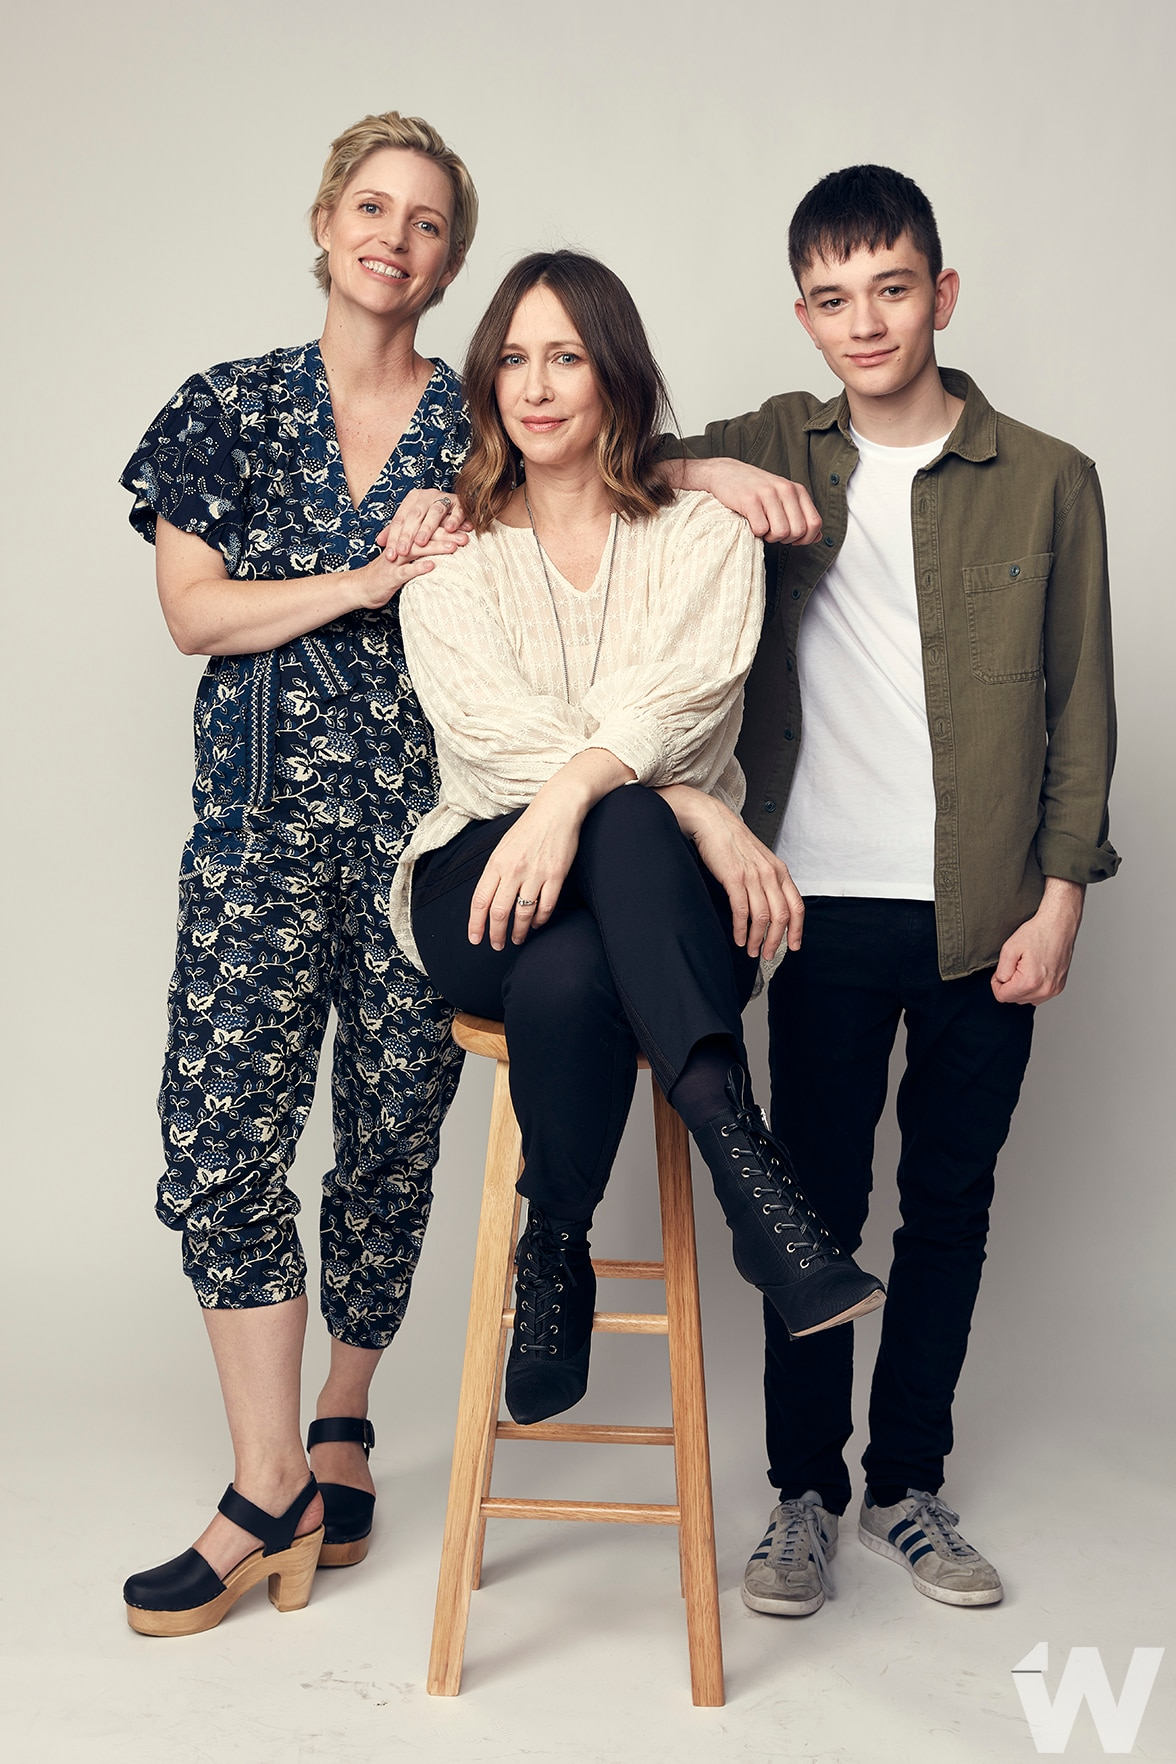 Boundaries SXSW Vera Farmiga, Shana Feste and Lewis MacDougall